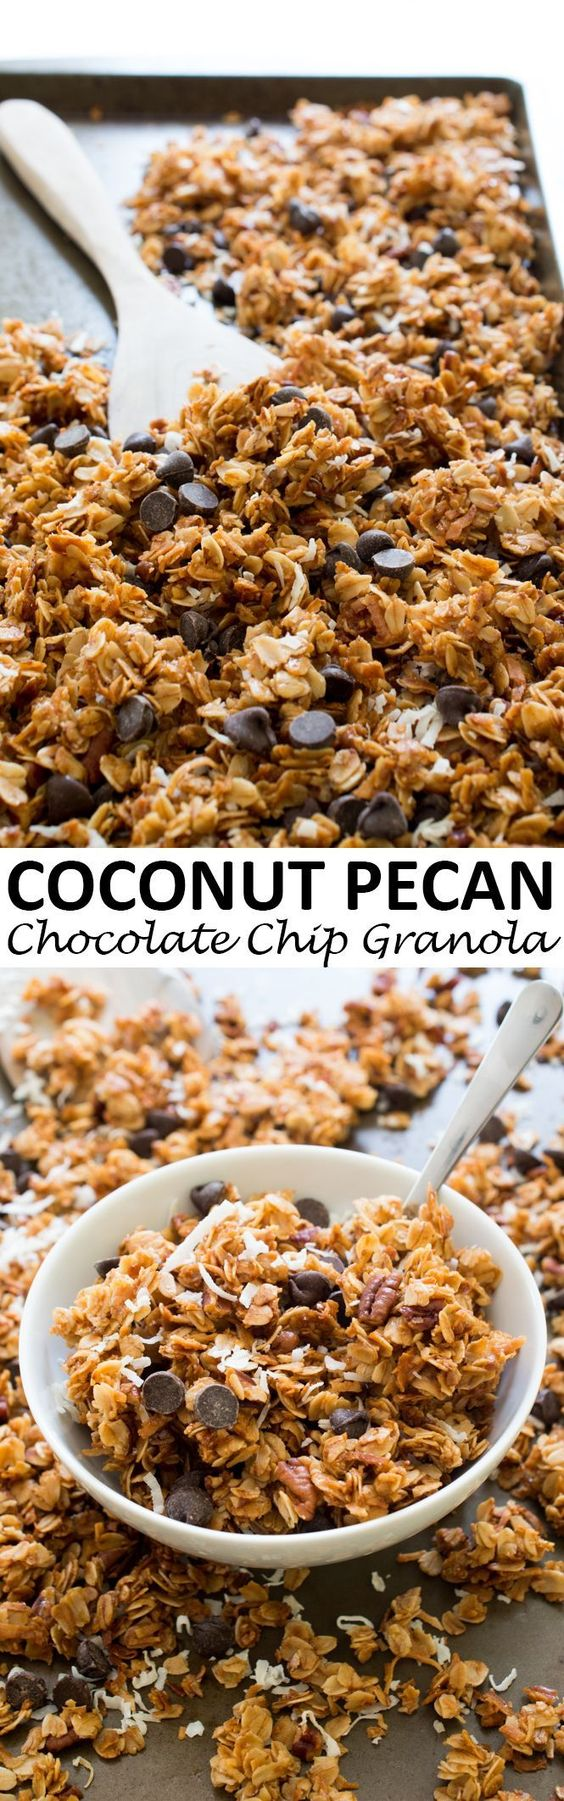 Pecans, Granola and Chocolate chips on Pinterest